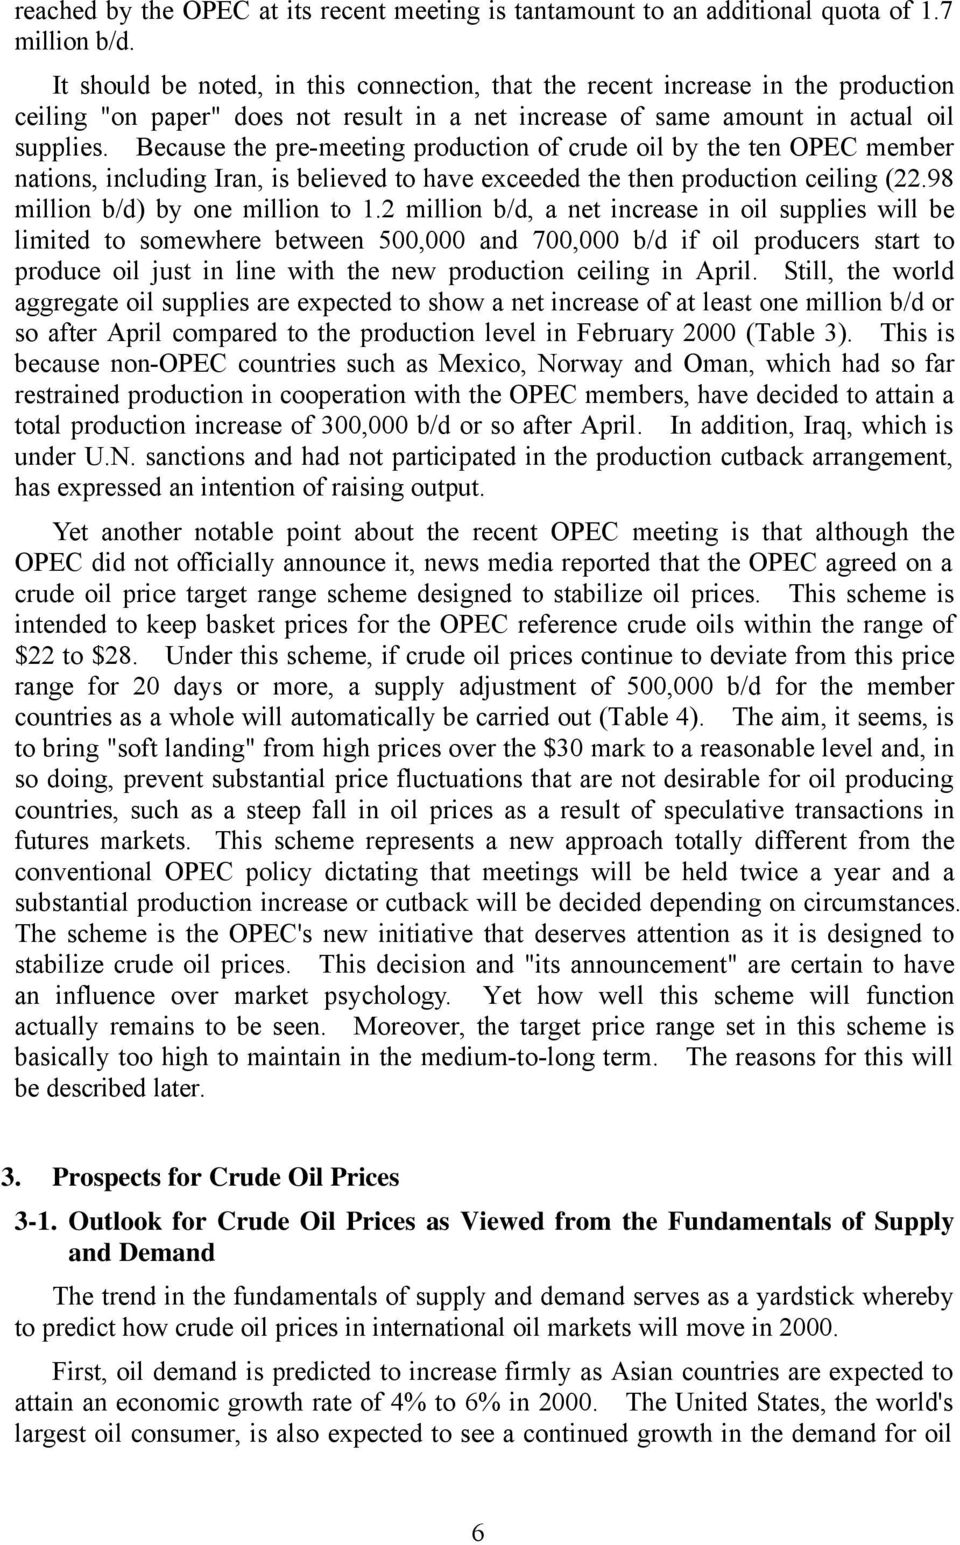 Because the pre-meeting production of crude oil by the ten OPEC member nations, including Iran, is believed to have exceeded the then production ceiling (22.98 million b/d) by one million to 1.